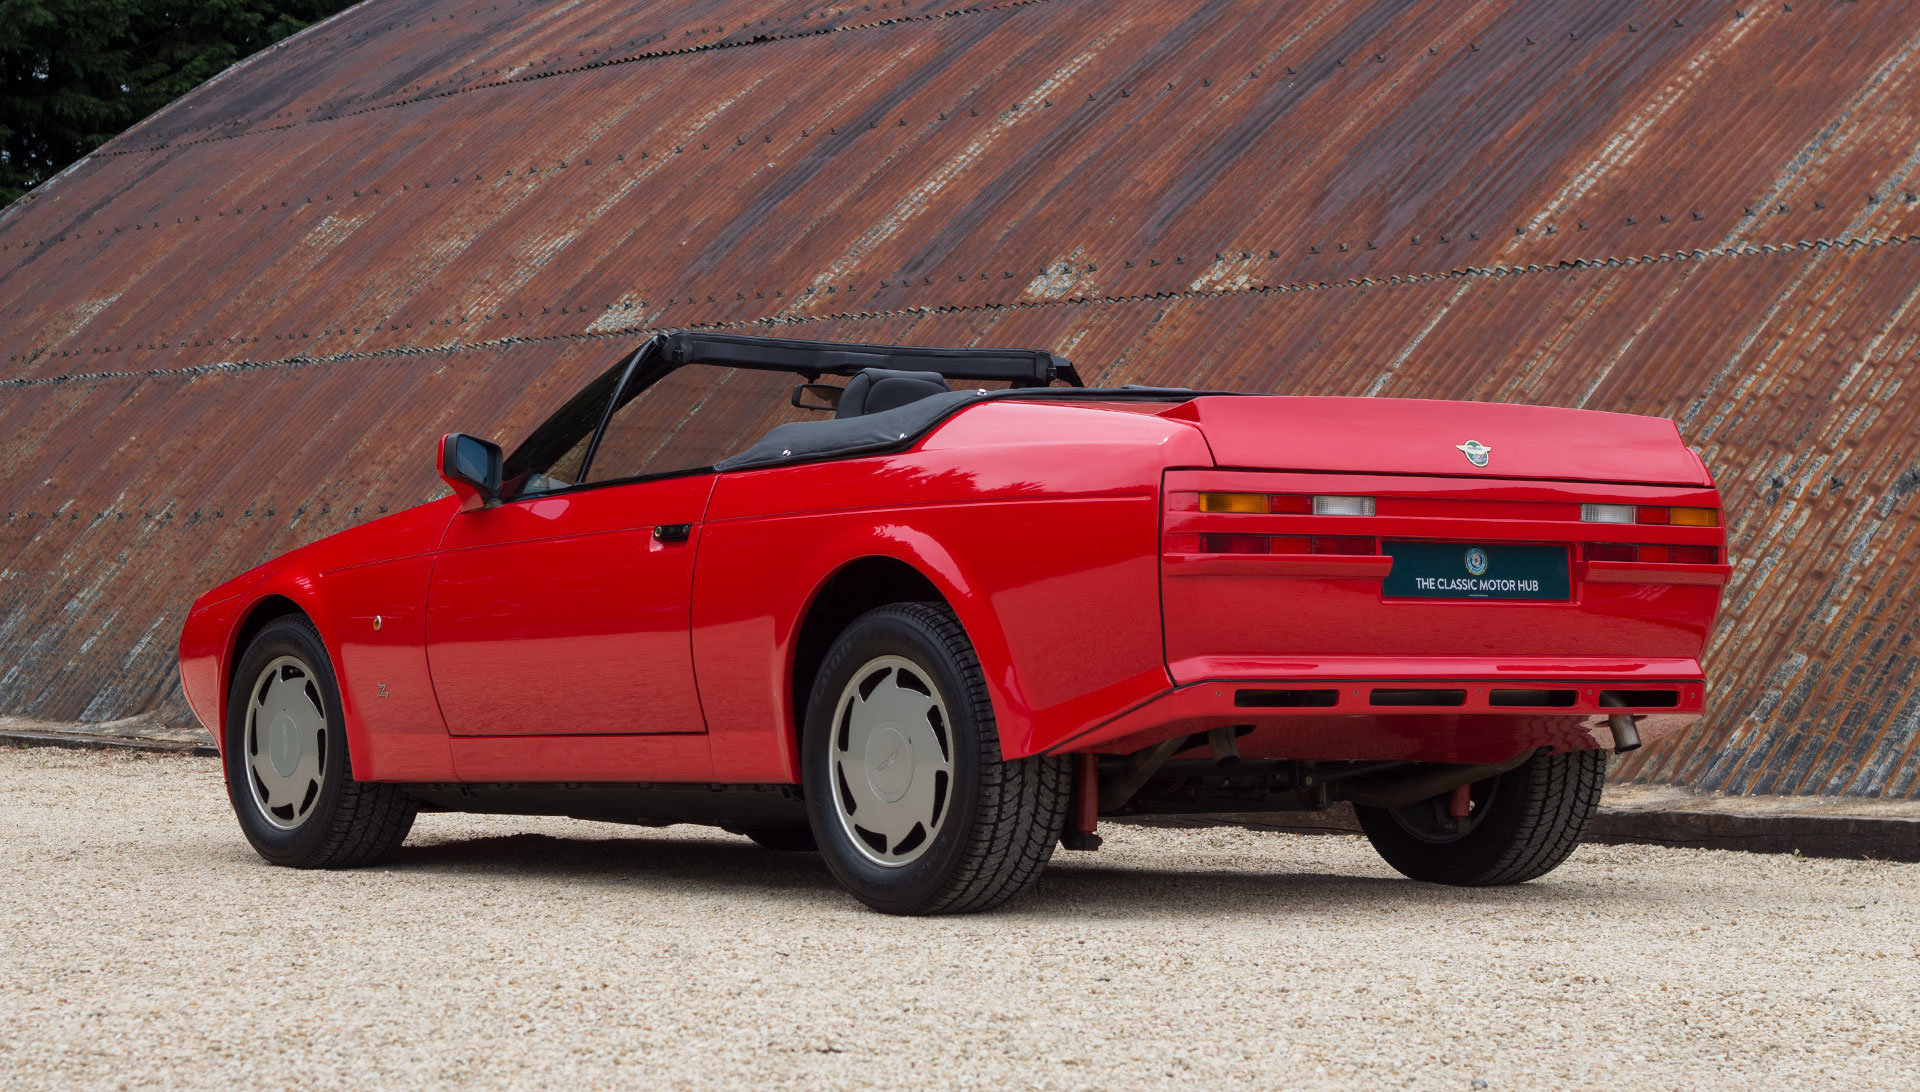 1989 Aston Martin V8 Vantage Volante Zagato - Unregistered For Sale (picture 3 of 24)